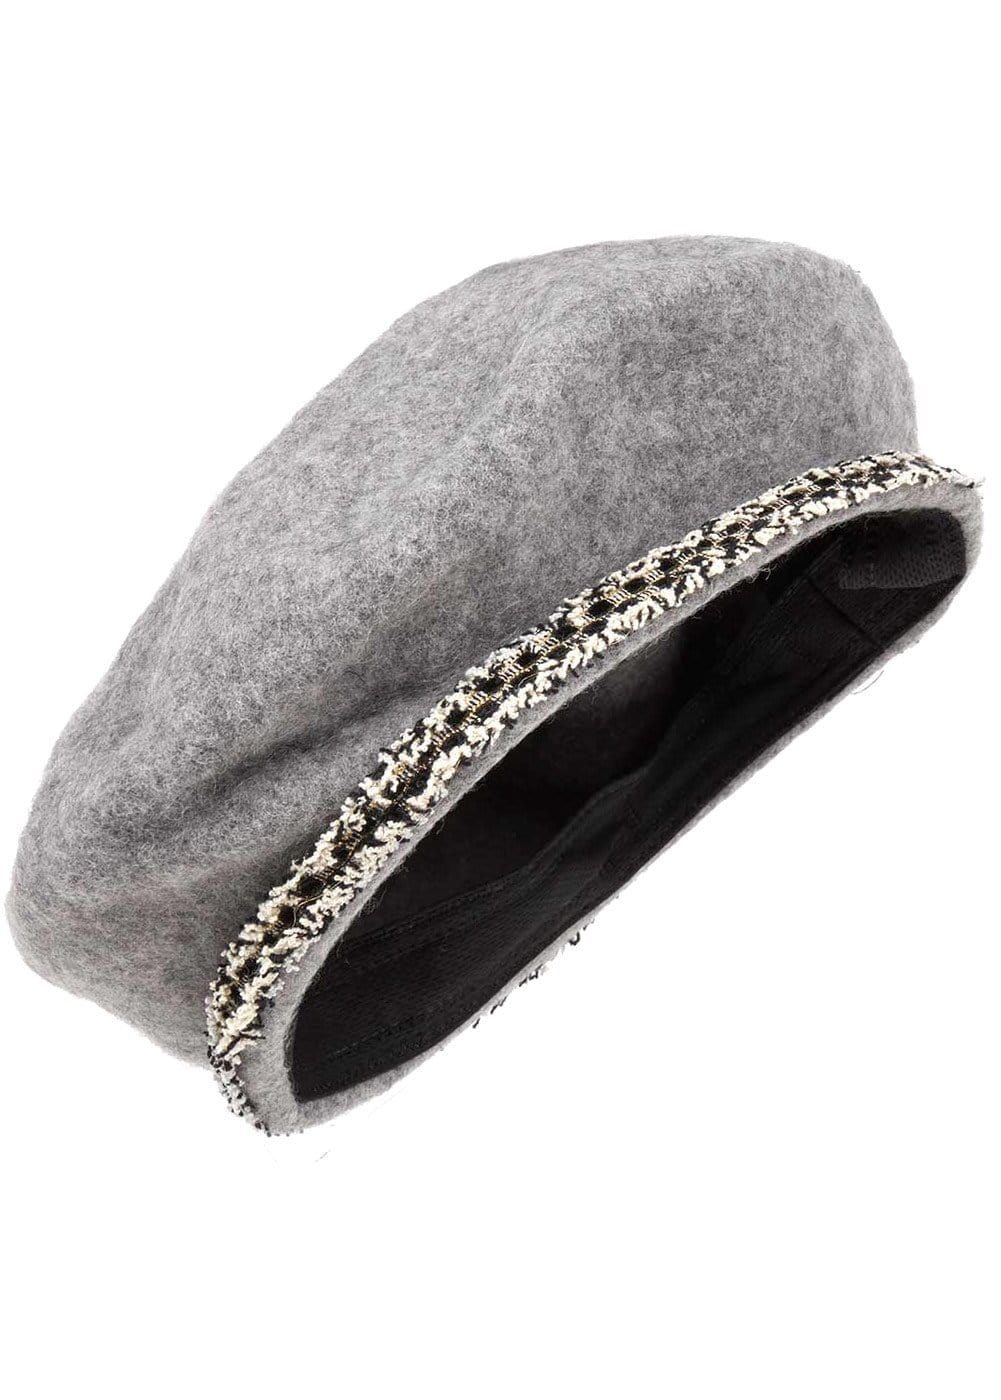 Girls Paris Beret - Grey - Detail